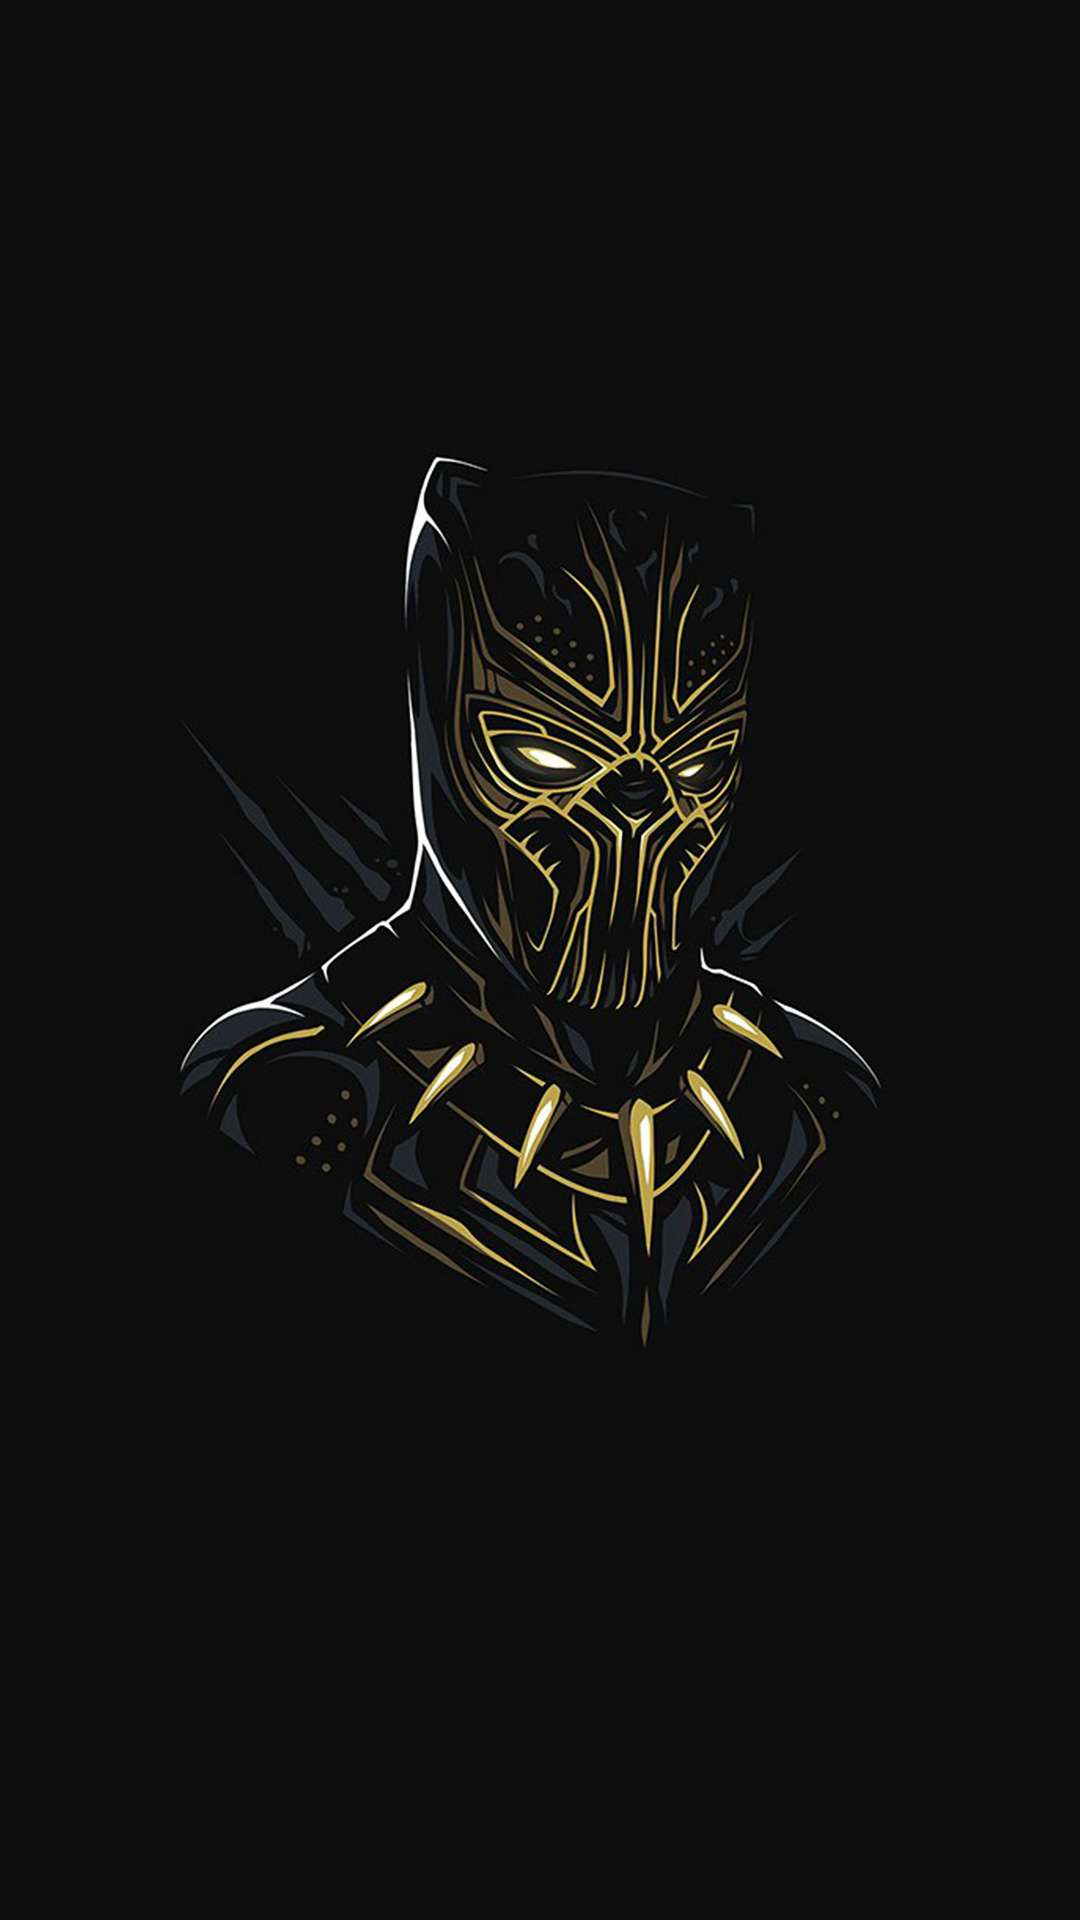 Black Panther Killmonger Minimal iPhone Wallpaper